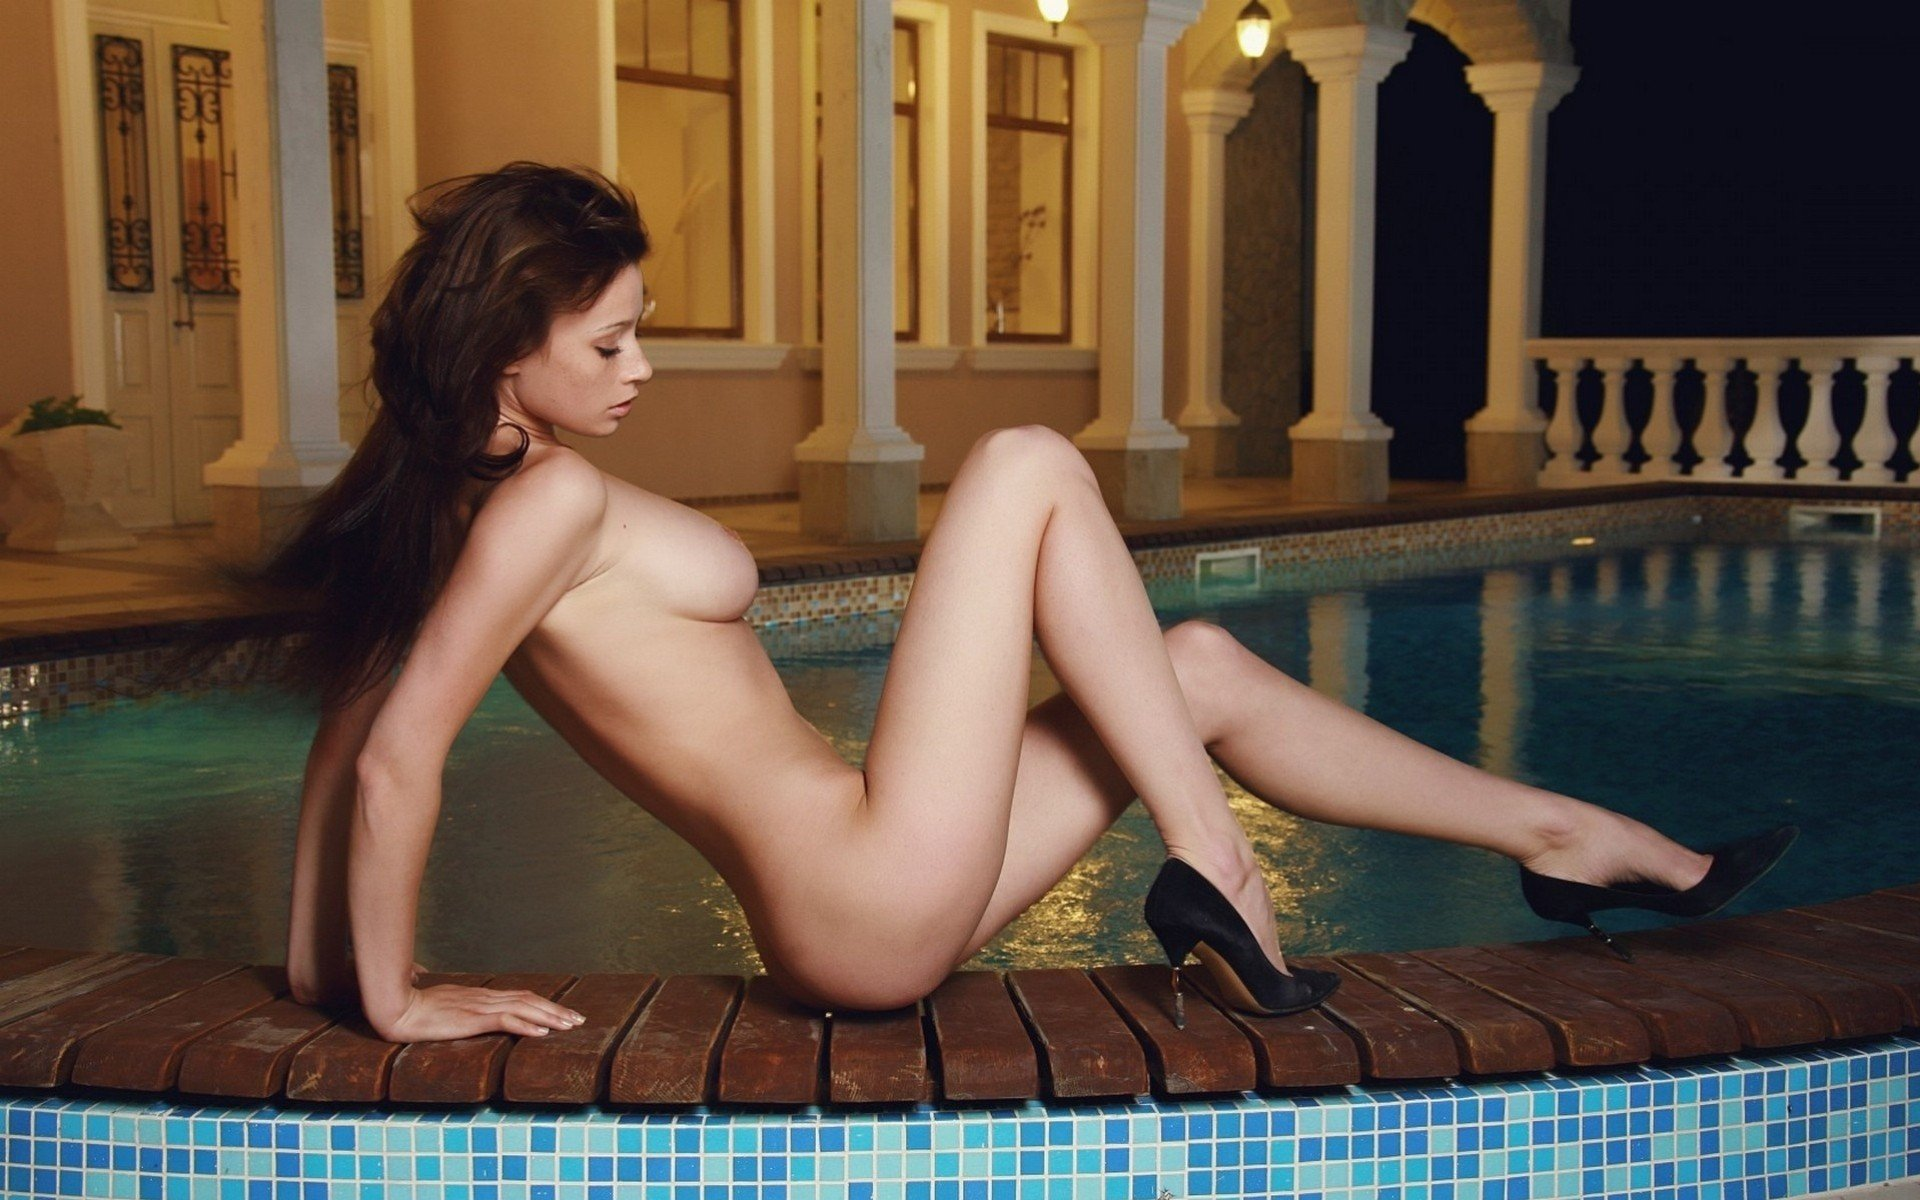 girls-nude-in-pool-wet-photo-mix-vol6-49